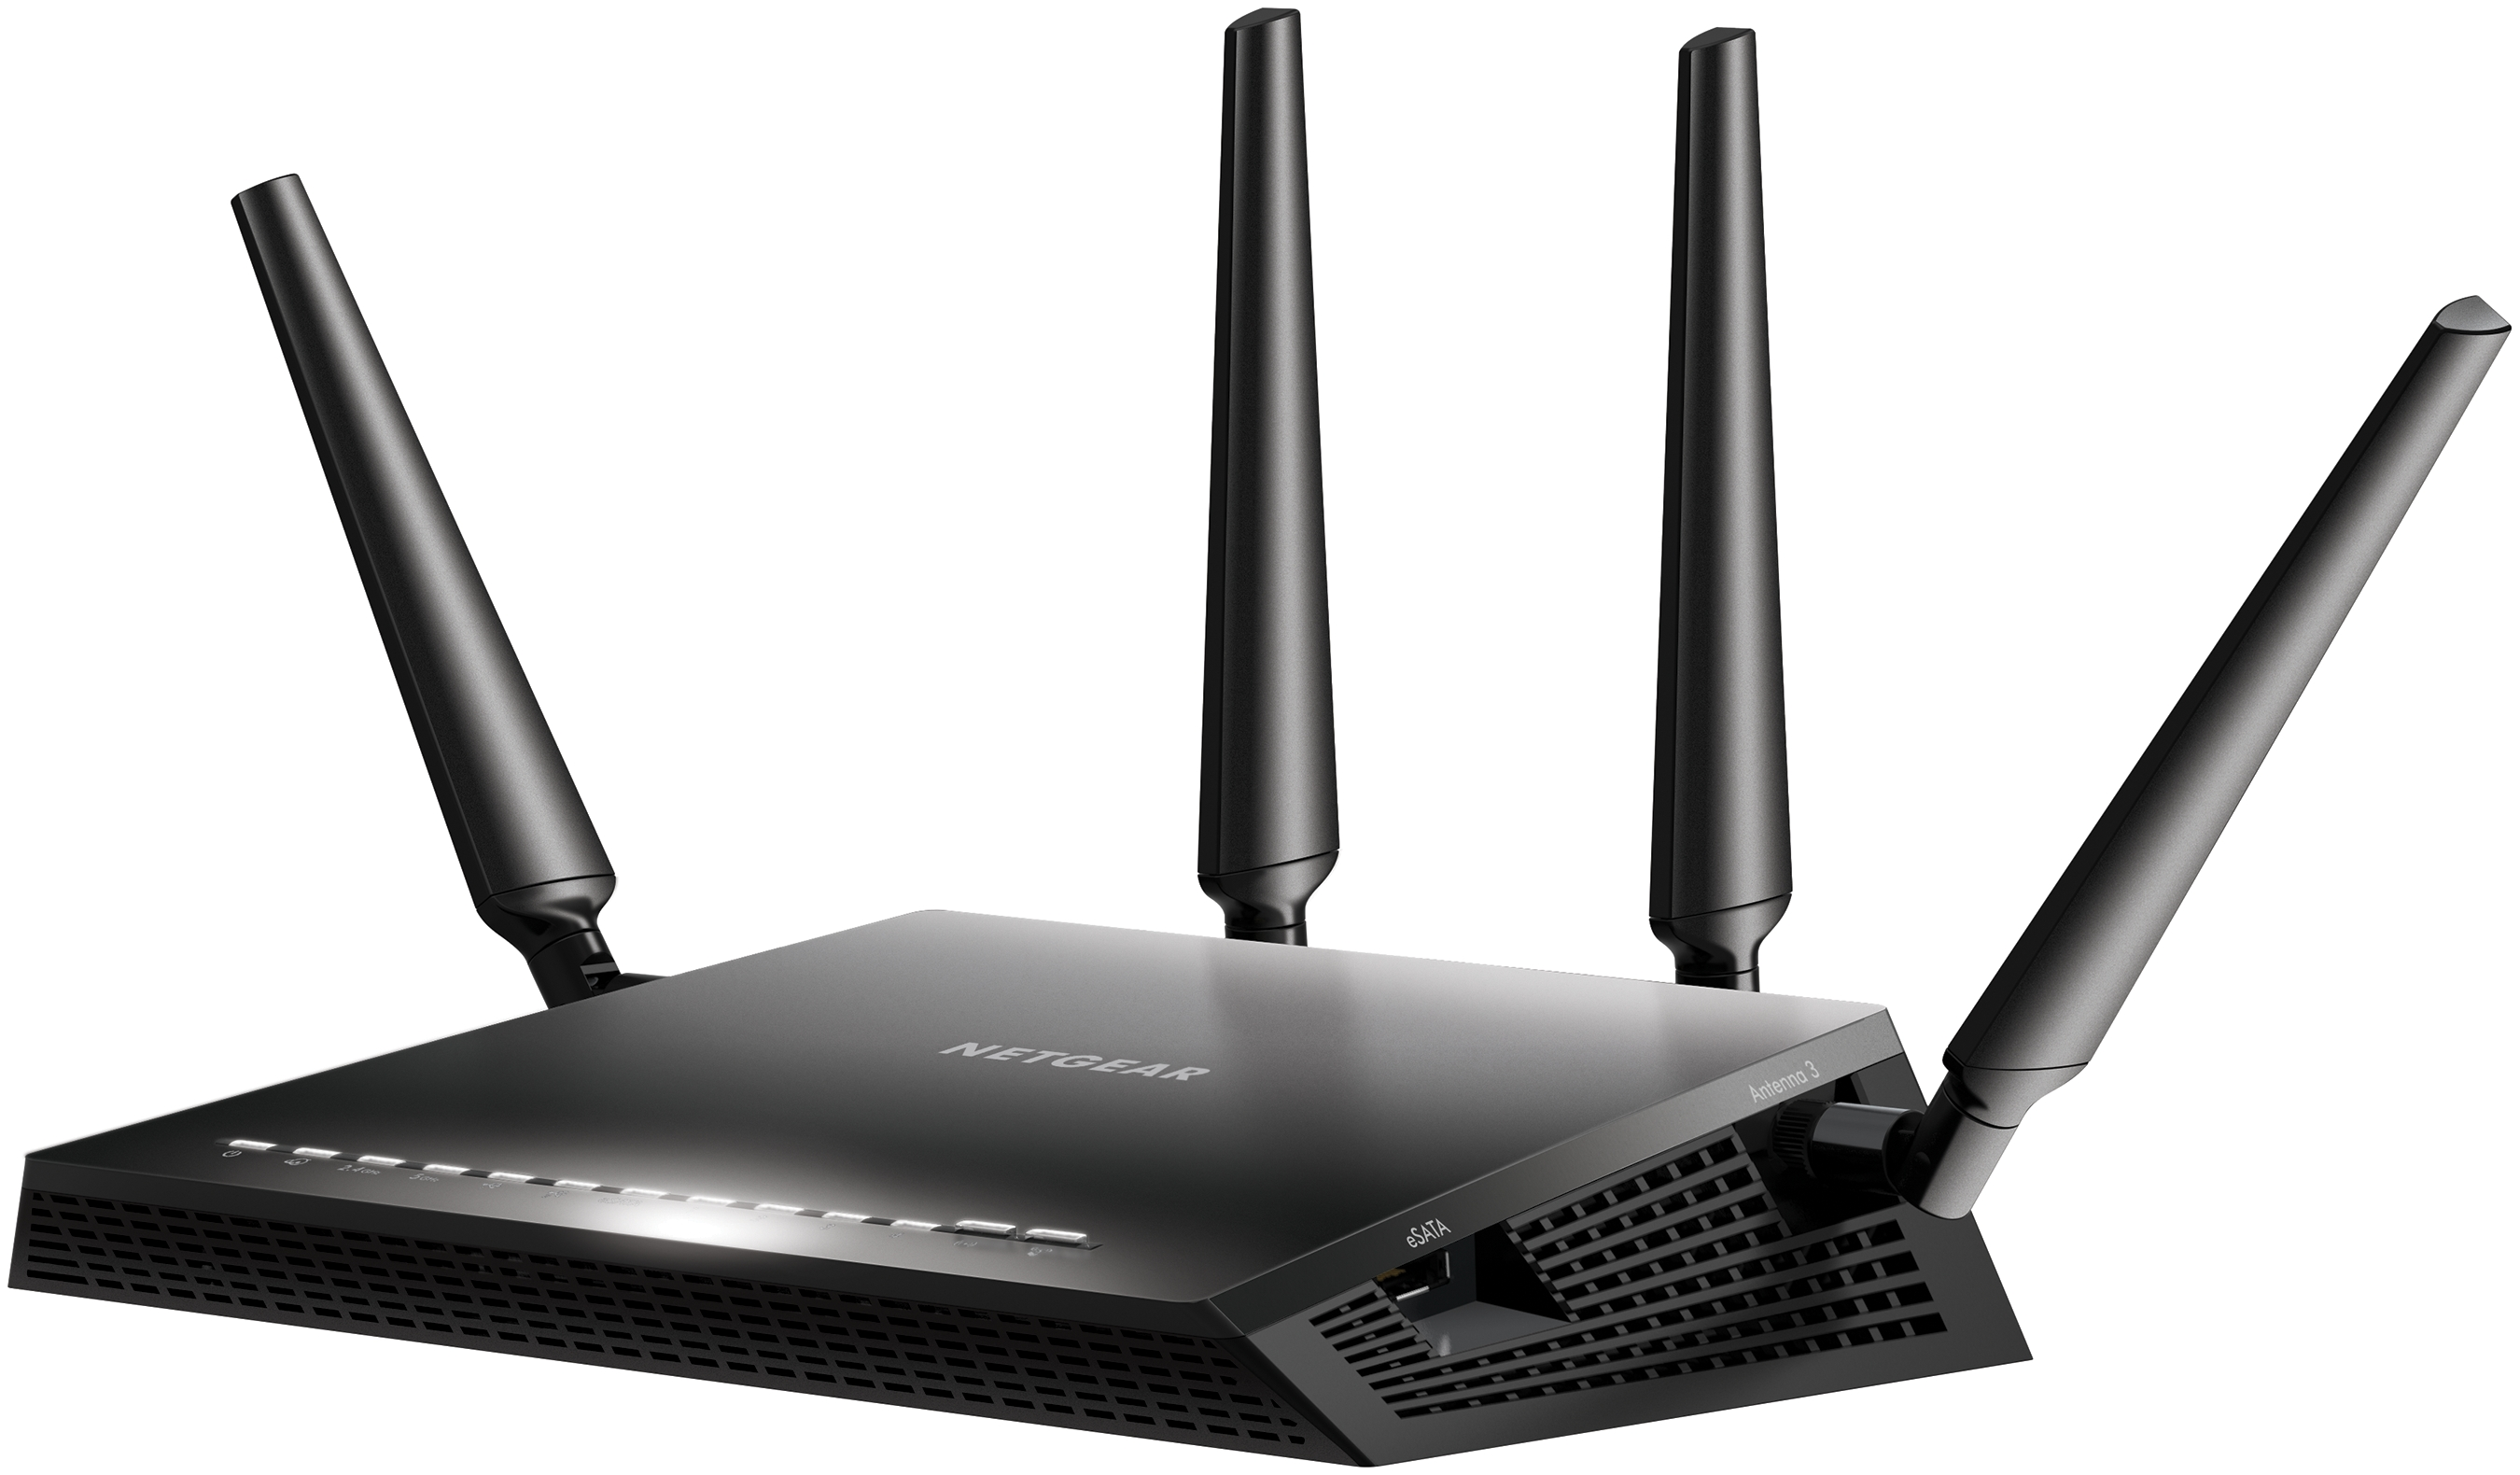 Hacking alert - Routers Breached